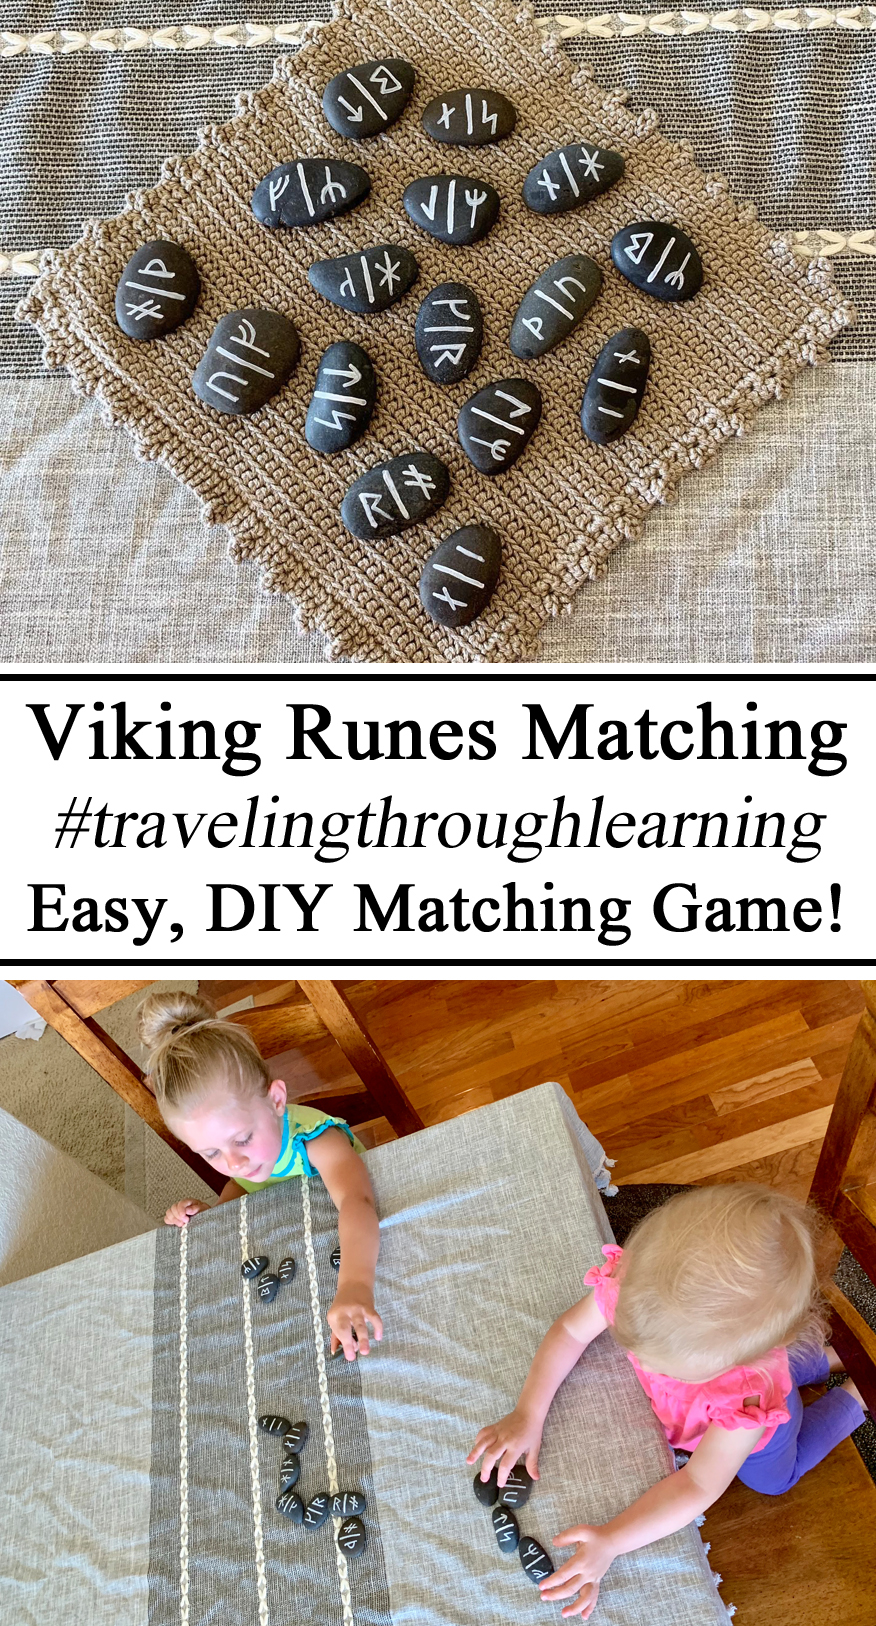 Homeschool, Homeschooling, Viking Runes Younger Futhark, Old Nose, Language, Dominos, Matching, DIY, River Rocks, Language, Iceland Unit, Learning Icelandic, #travelingthroughlearning, Hands on Learning, Unschooling, Montessori, Preschool, PreK, Kindergarten, Creative Moms, Early Childhood Education